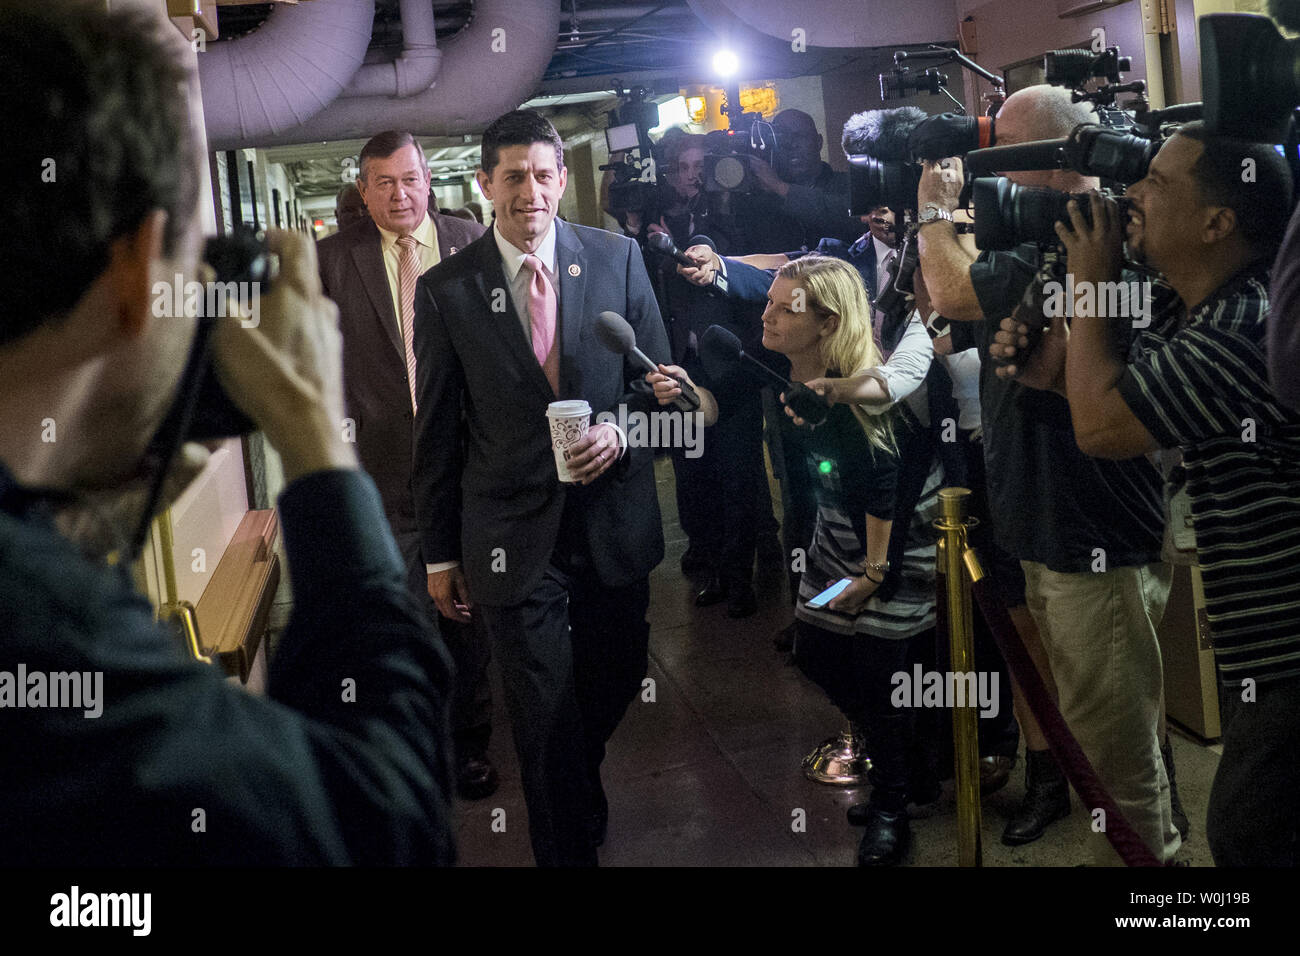 Rep. Paul Ryan (R-WI) arrives for a GOP Conference Candidates forum for the election of the new Speaker of the House on October 28, 2015 in Washington, D.C.  The Republicans are selecting a candidate for Speaker that will replace John Boehner (R-OH) when he retires on October 30. Photo by Pete Marovich/UPI - Stock Image